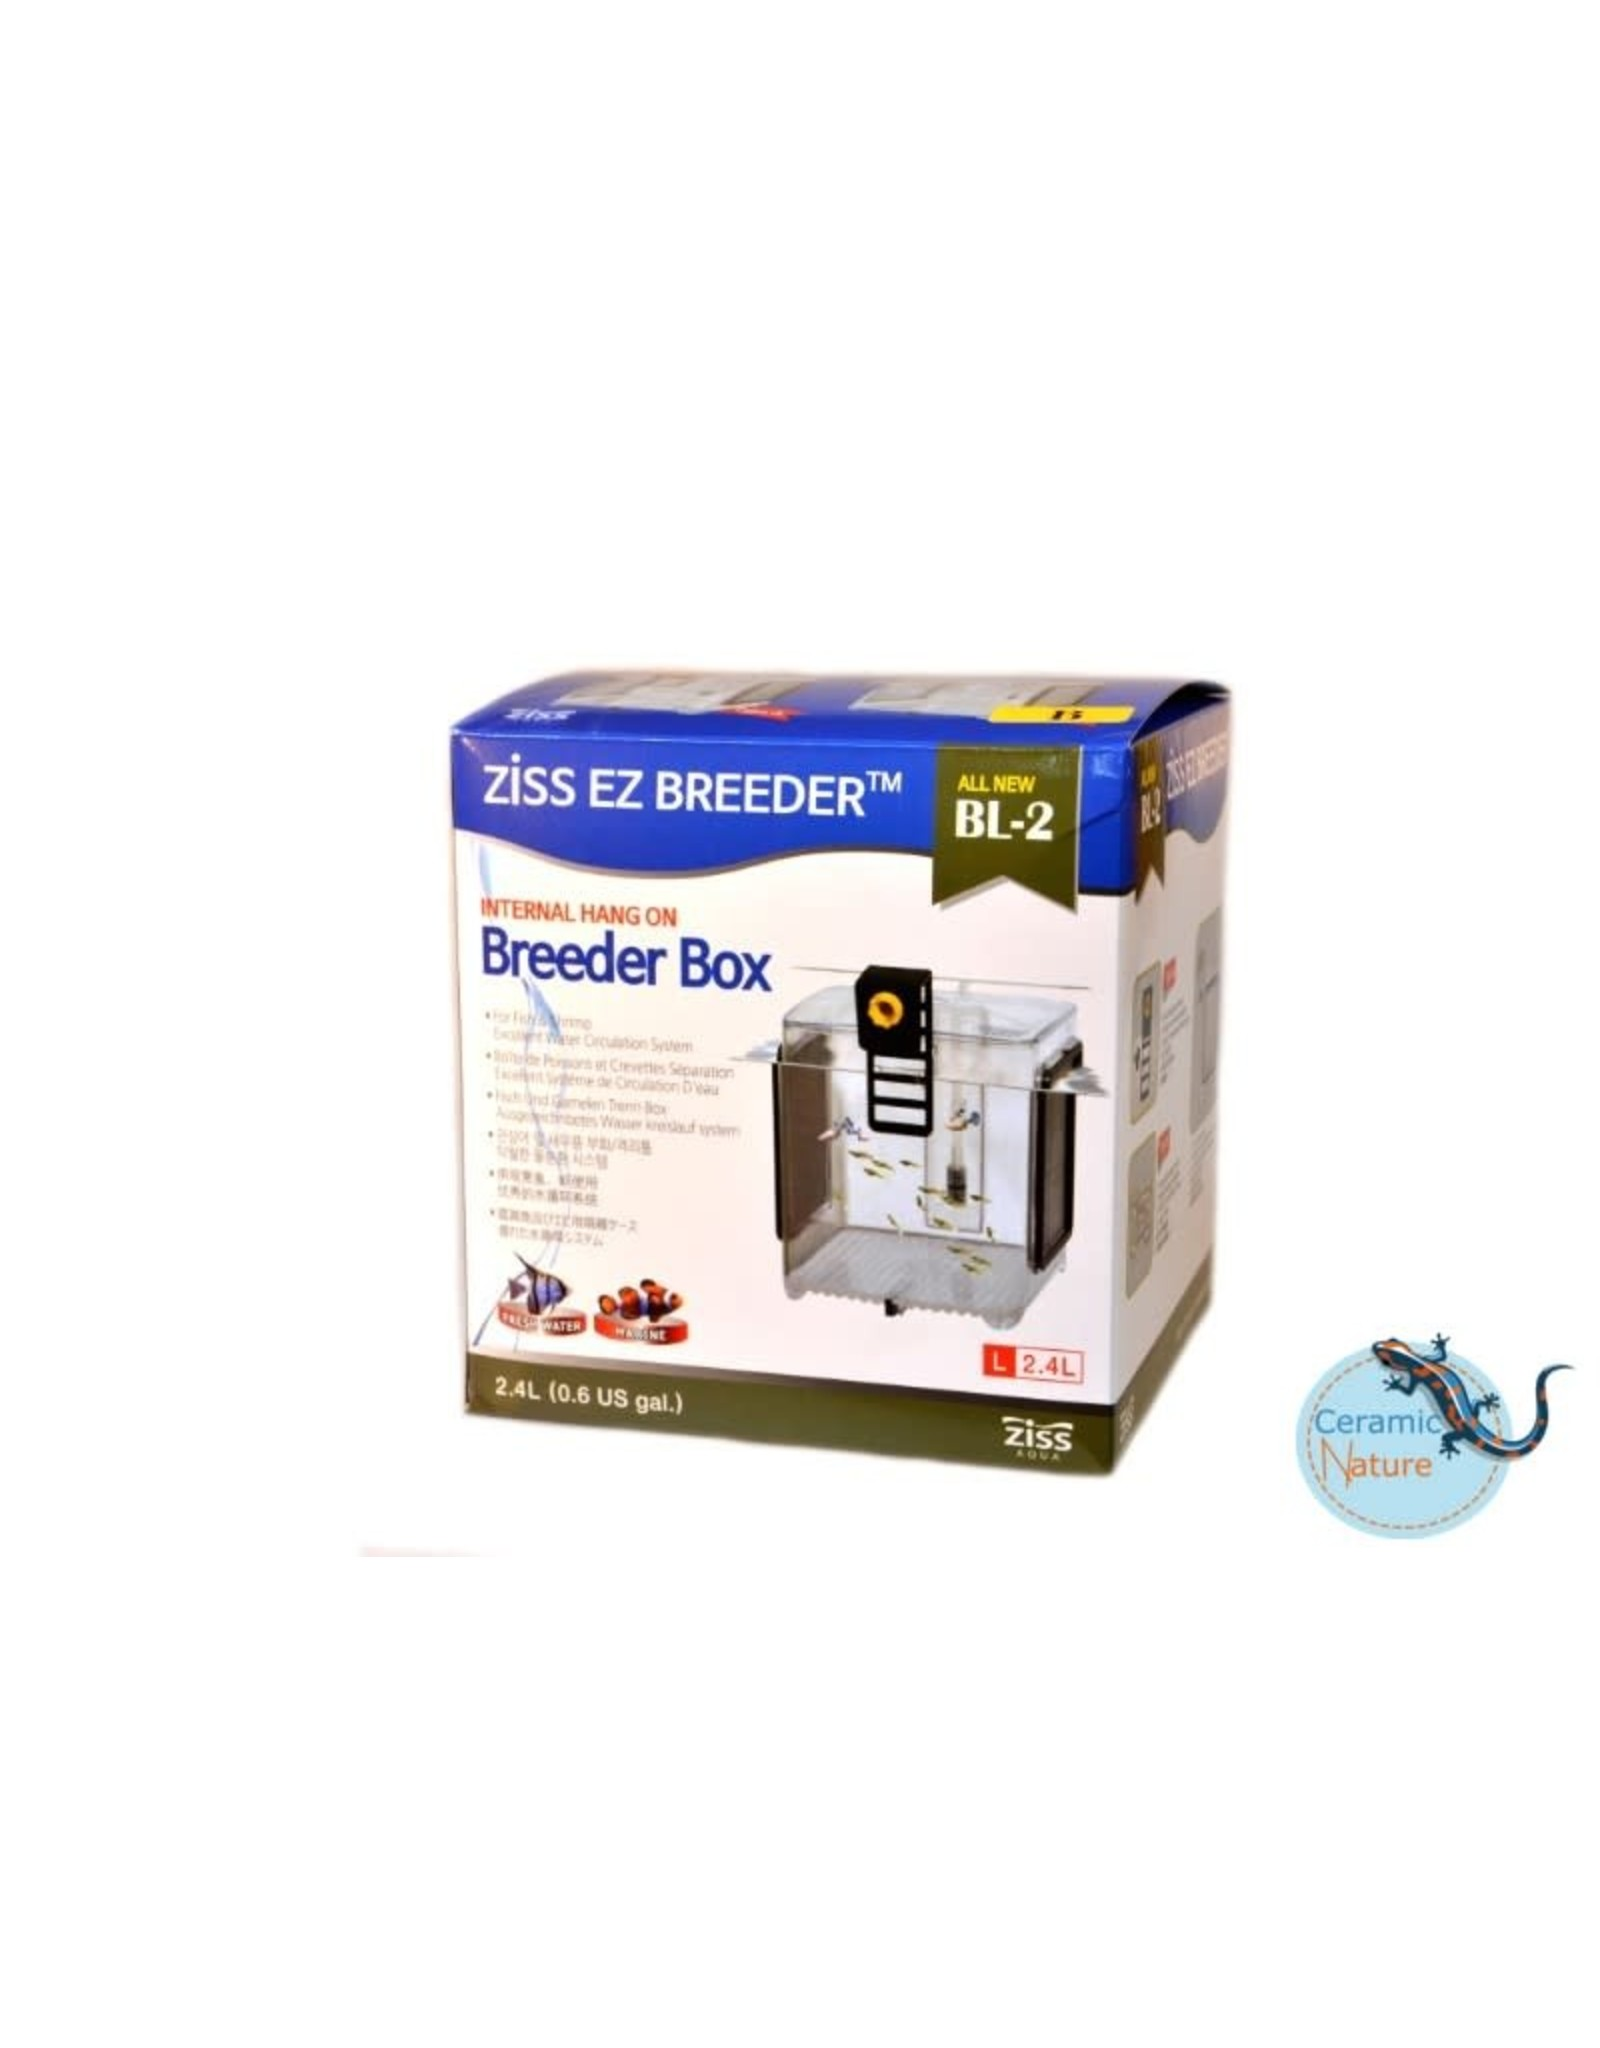 Ziss Breeding box BL-2 - Perfect for breeding fish and shrimp